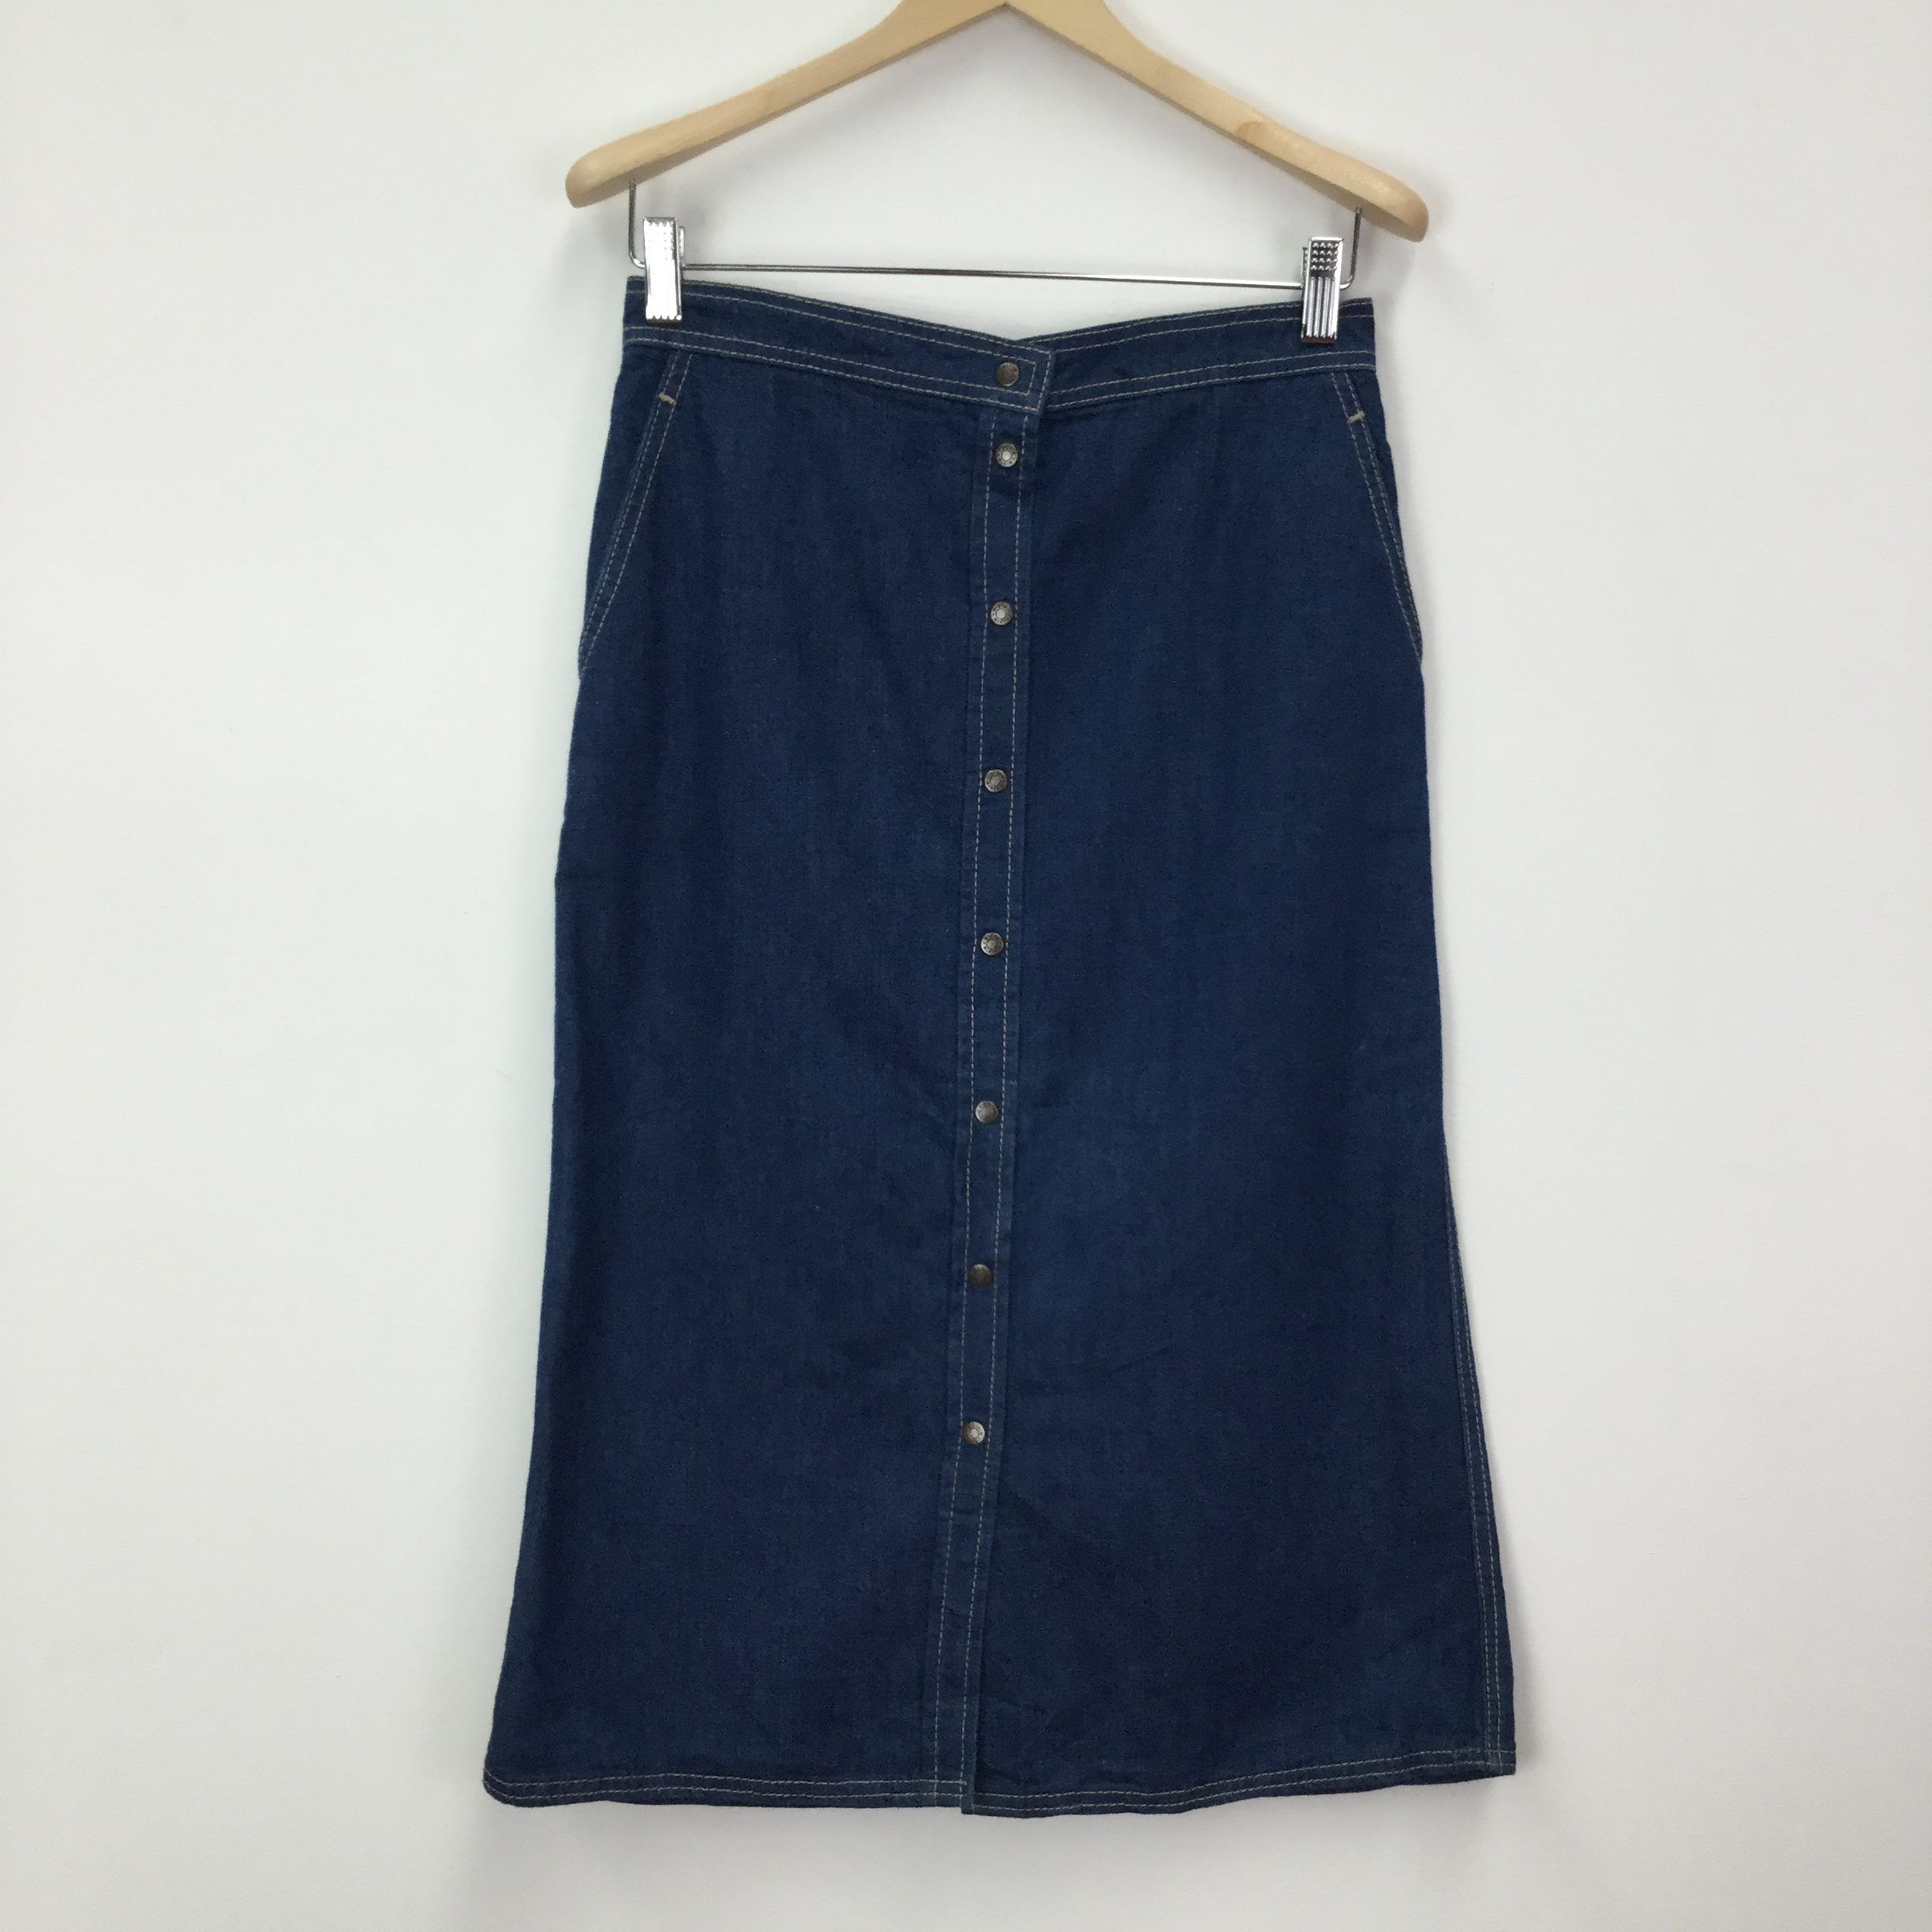 70s Vintage Union Made Calvin Klein Denim Skirt